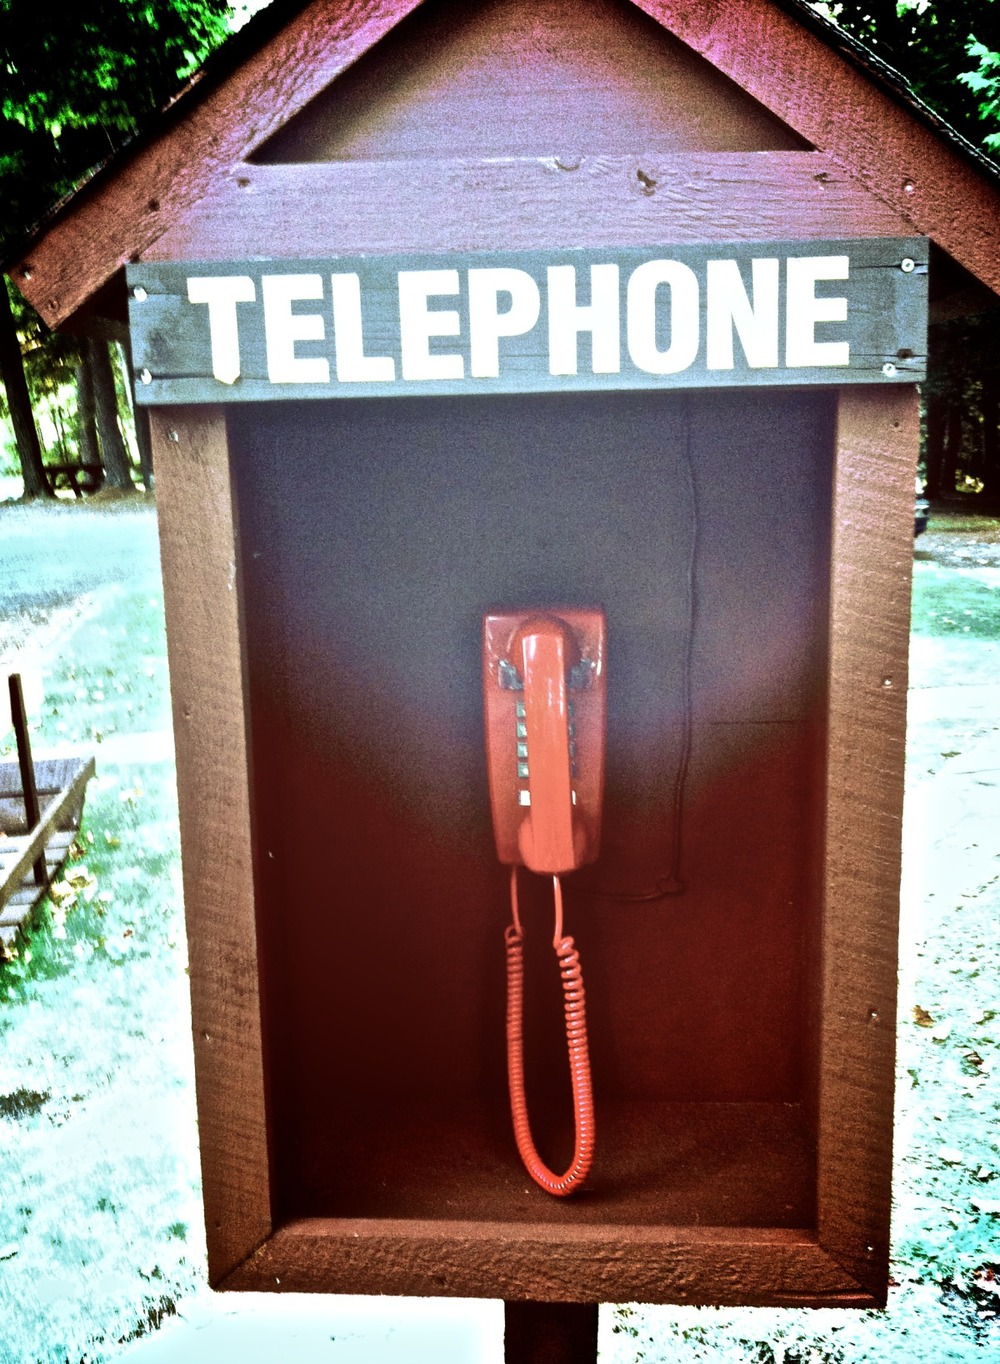 payphone 9.17 upload 3.jpg